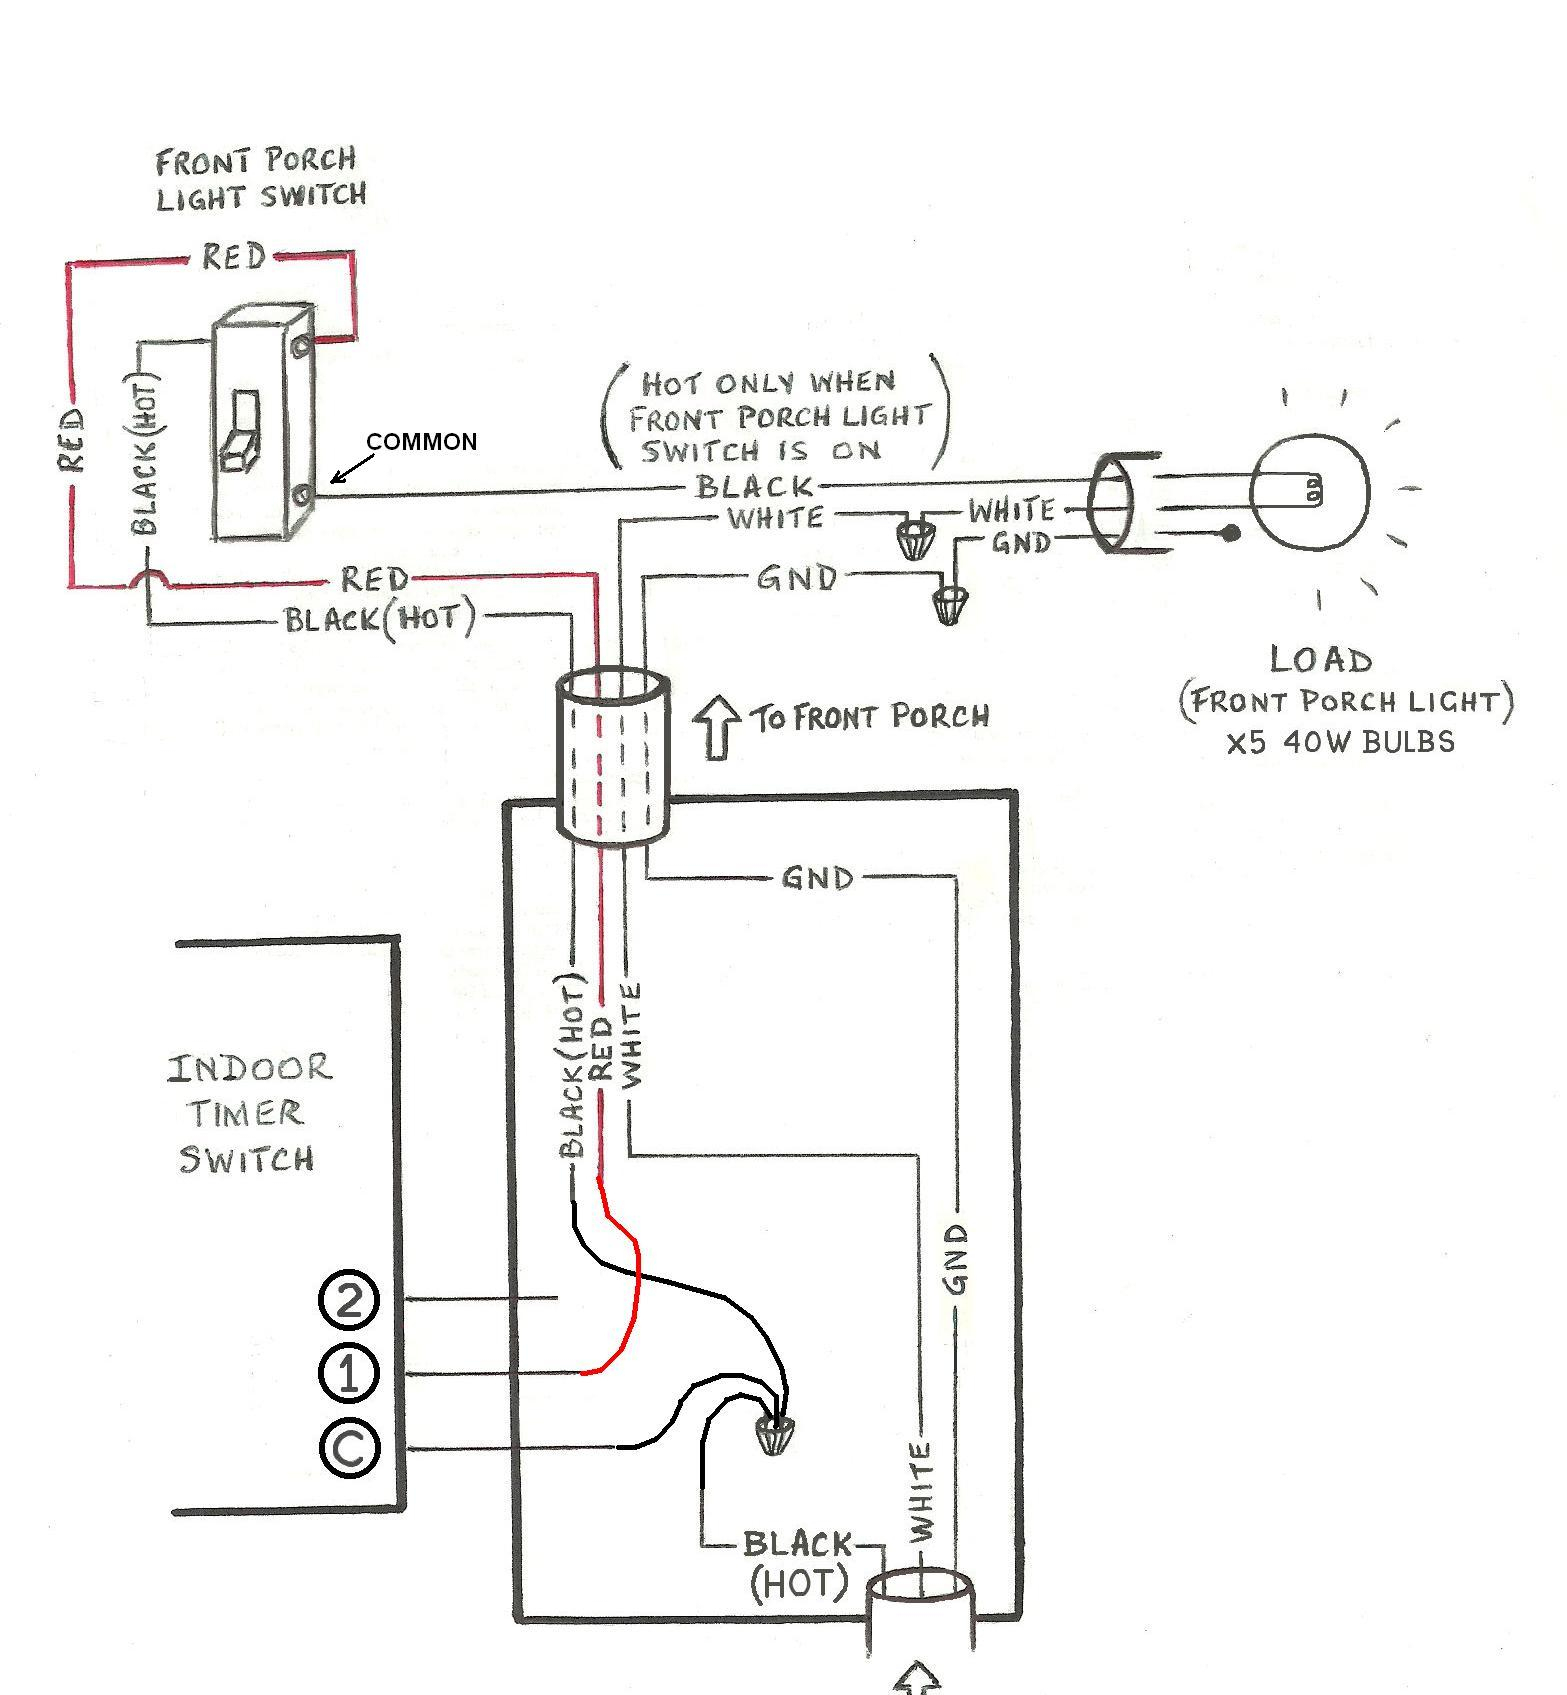 3 Way Light Diagram Google - Data Wiring Diagram Today - 3 Way Light Switching Wiring Diagram